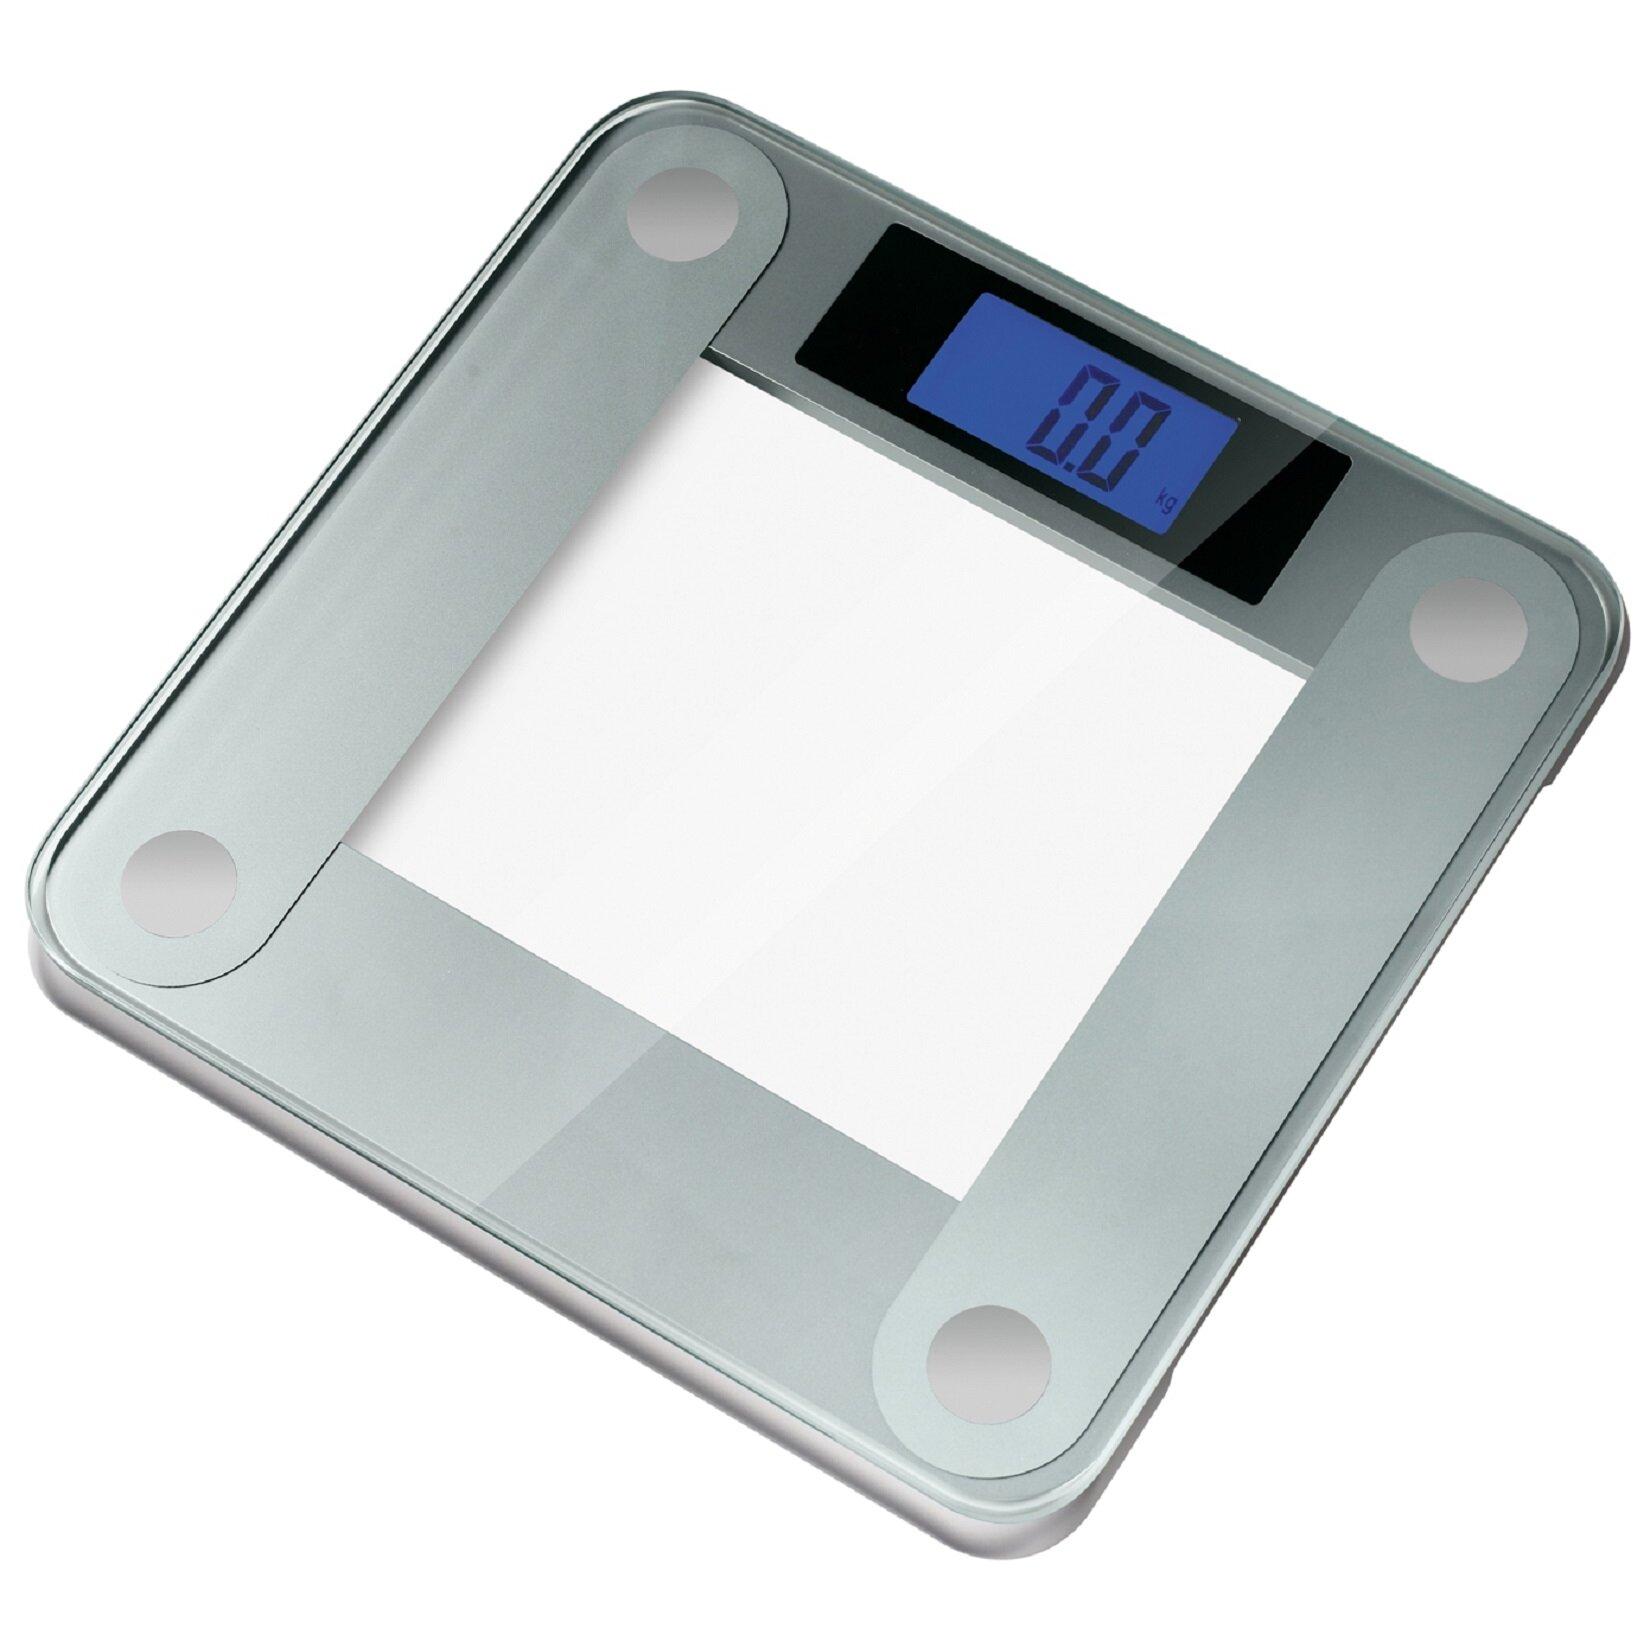 ozeri precision ii digital bathroom scale  lbs capacity, with, Bathroom decor